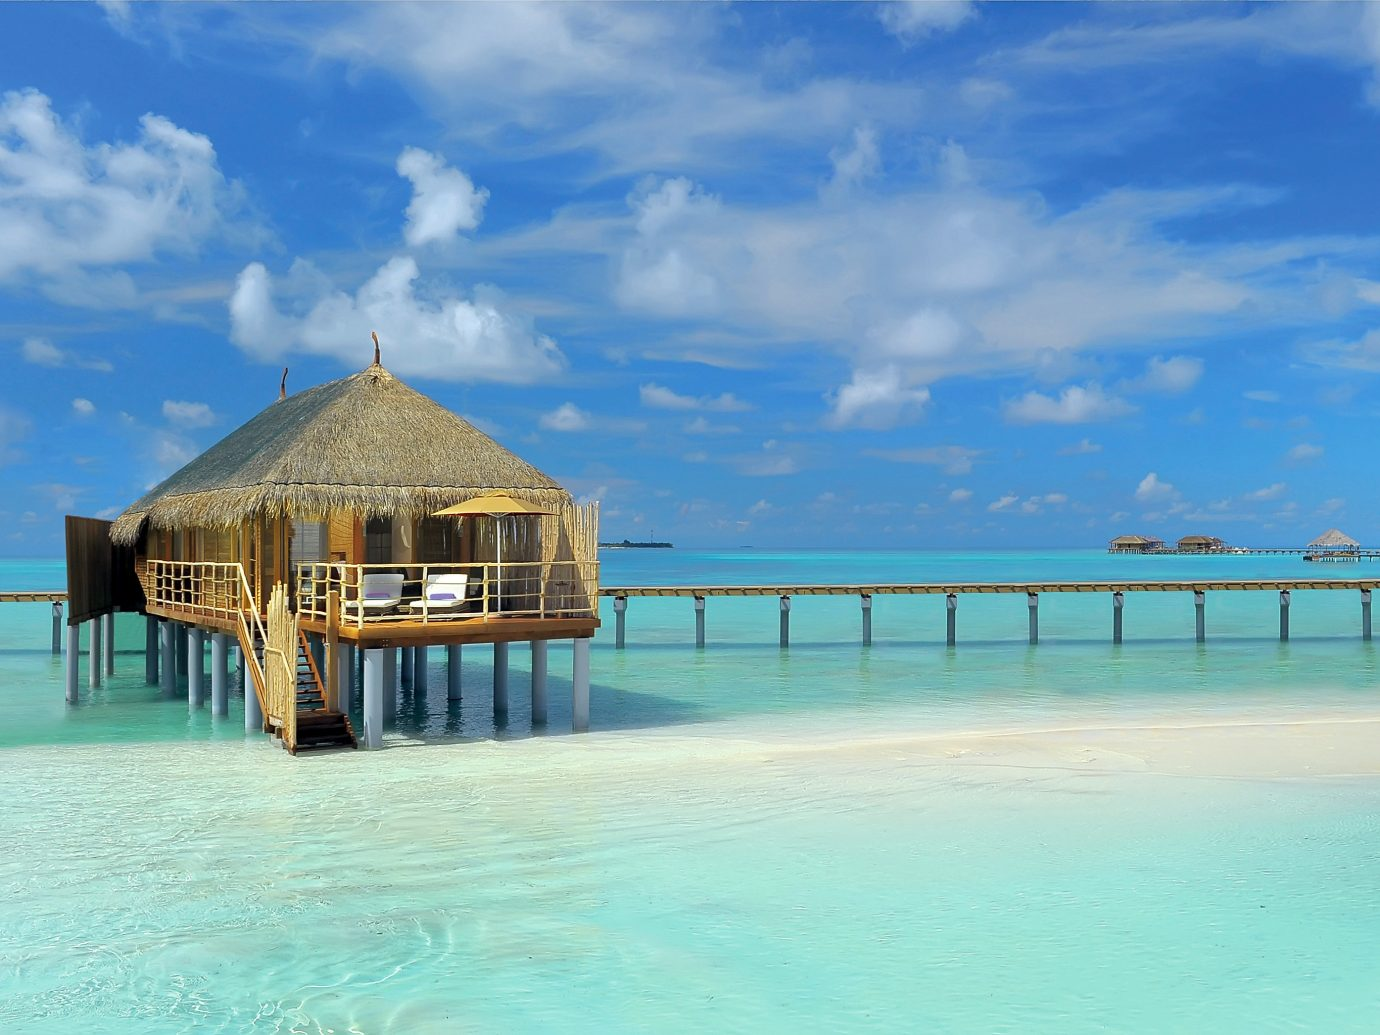 All-Inclusive Resorts Hotels Island Luxury Luxury Travel Overwater Bungalow Romance Romantic Waterfront sky water pier scene outdoor Sea Beach Ocean vacation caribbean Resort shore Coast estate bay swimming pool Lagoon Pool tropics blue swimming day